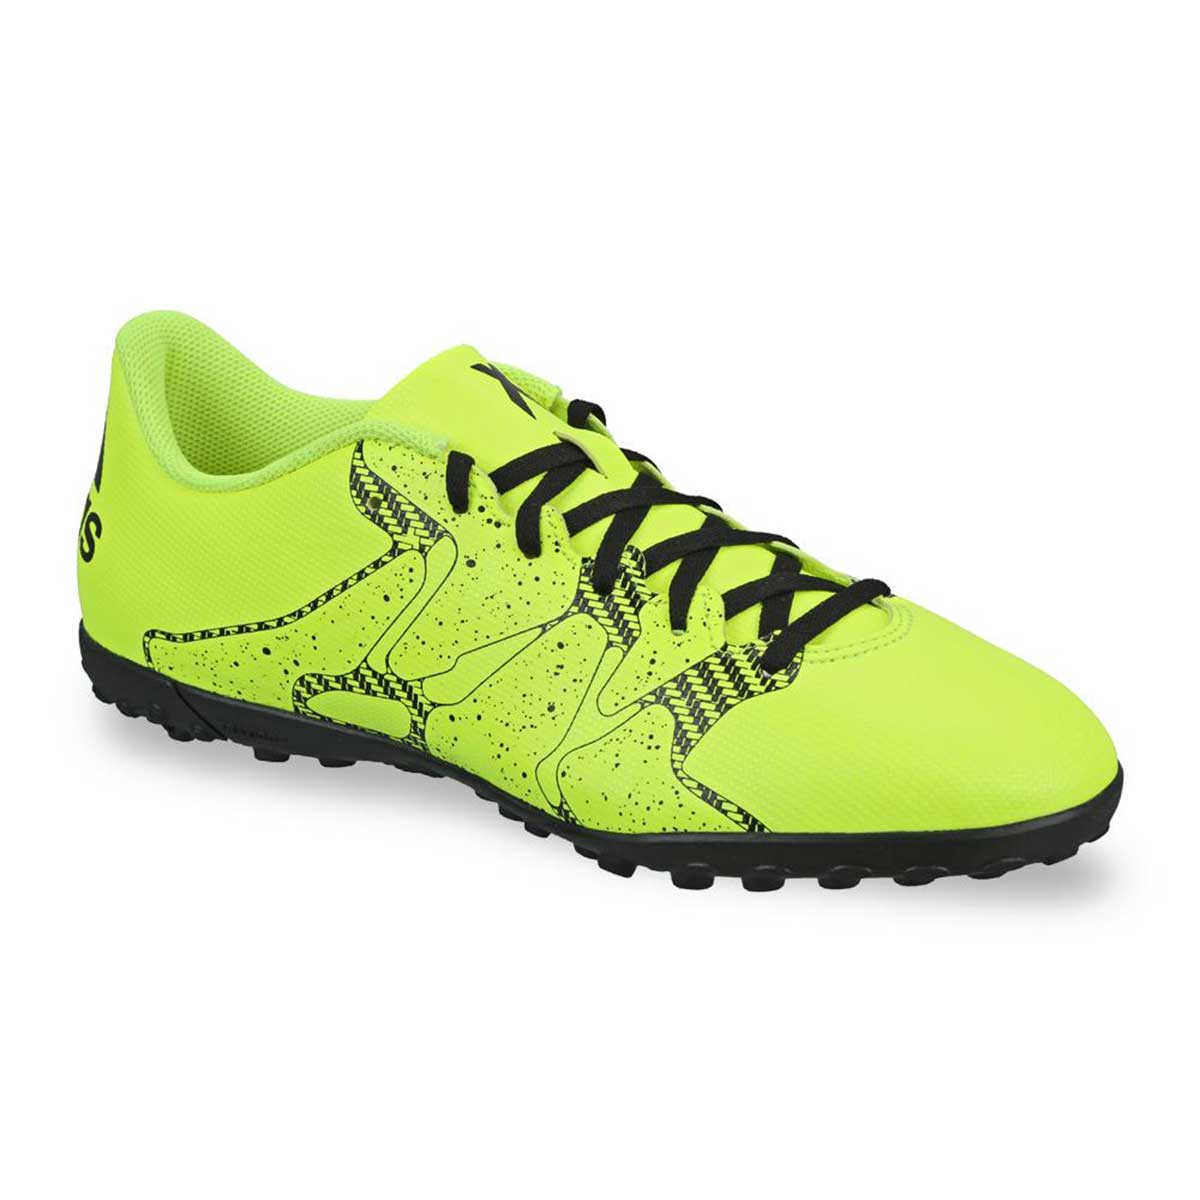 dd7a867c76c36 Buy Adidas X 15.4 Turf Football Shoes Online in India